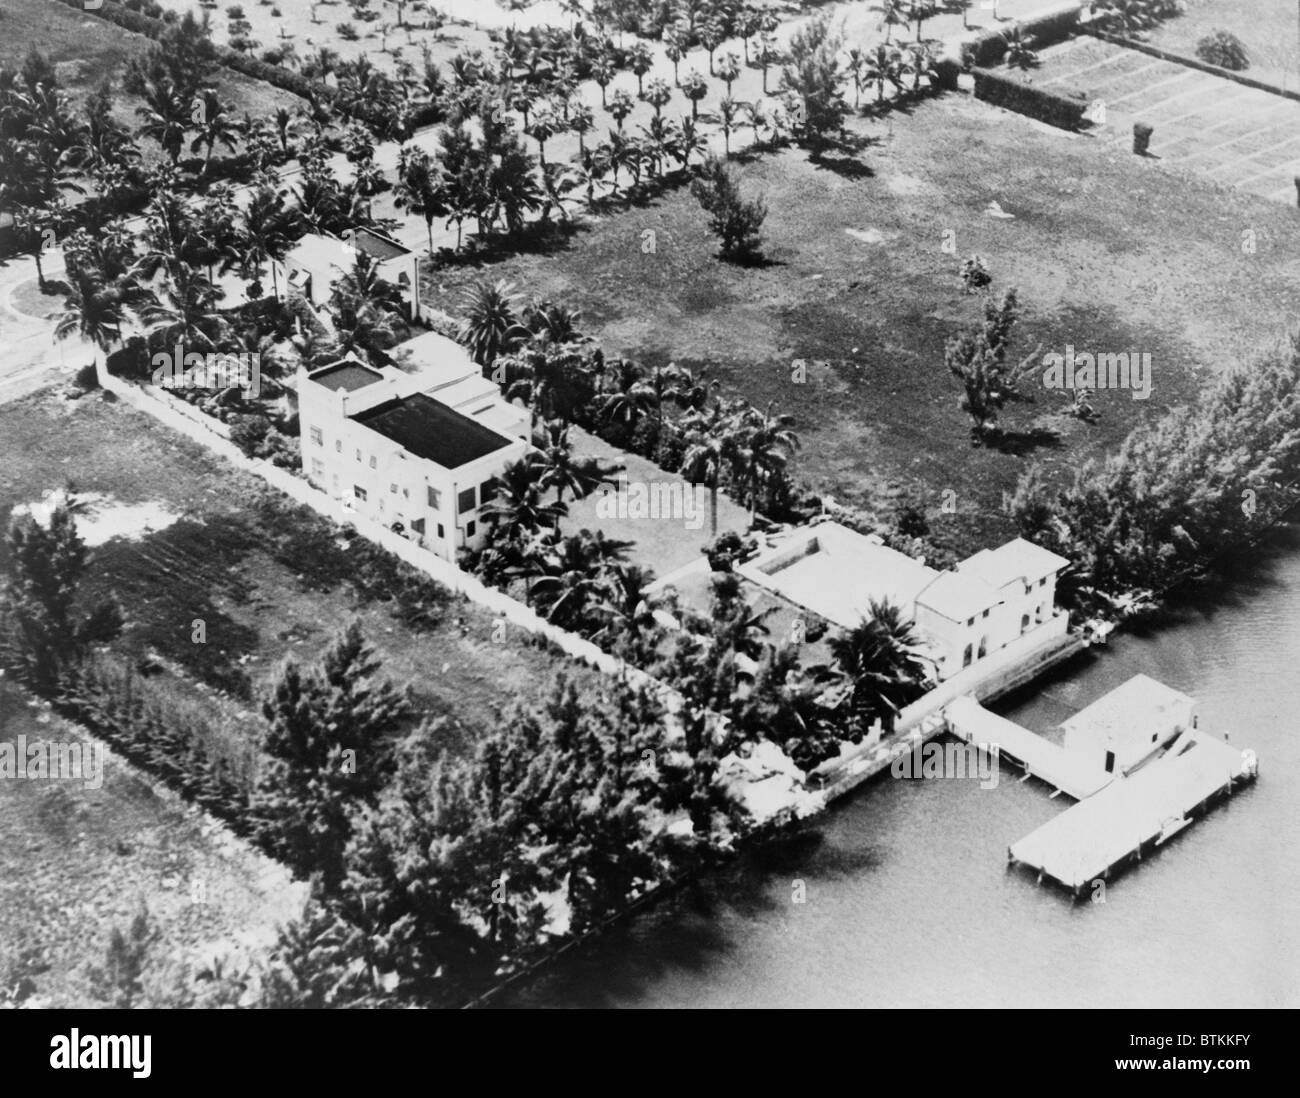 Al Capone's luxurious Florida estate was cited as evidence of his extravagant life style during his 1931 tax - Stock Image